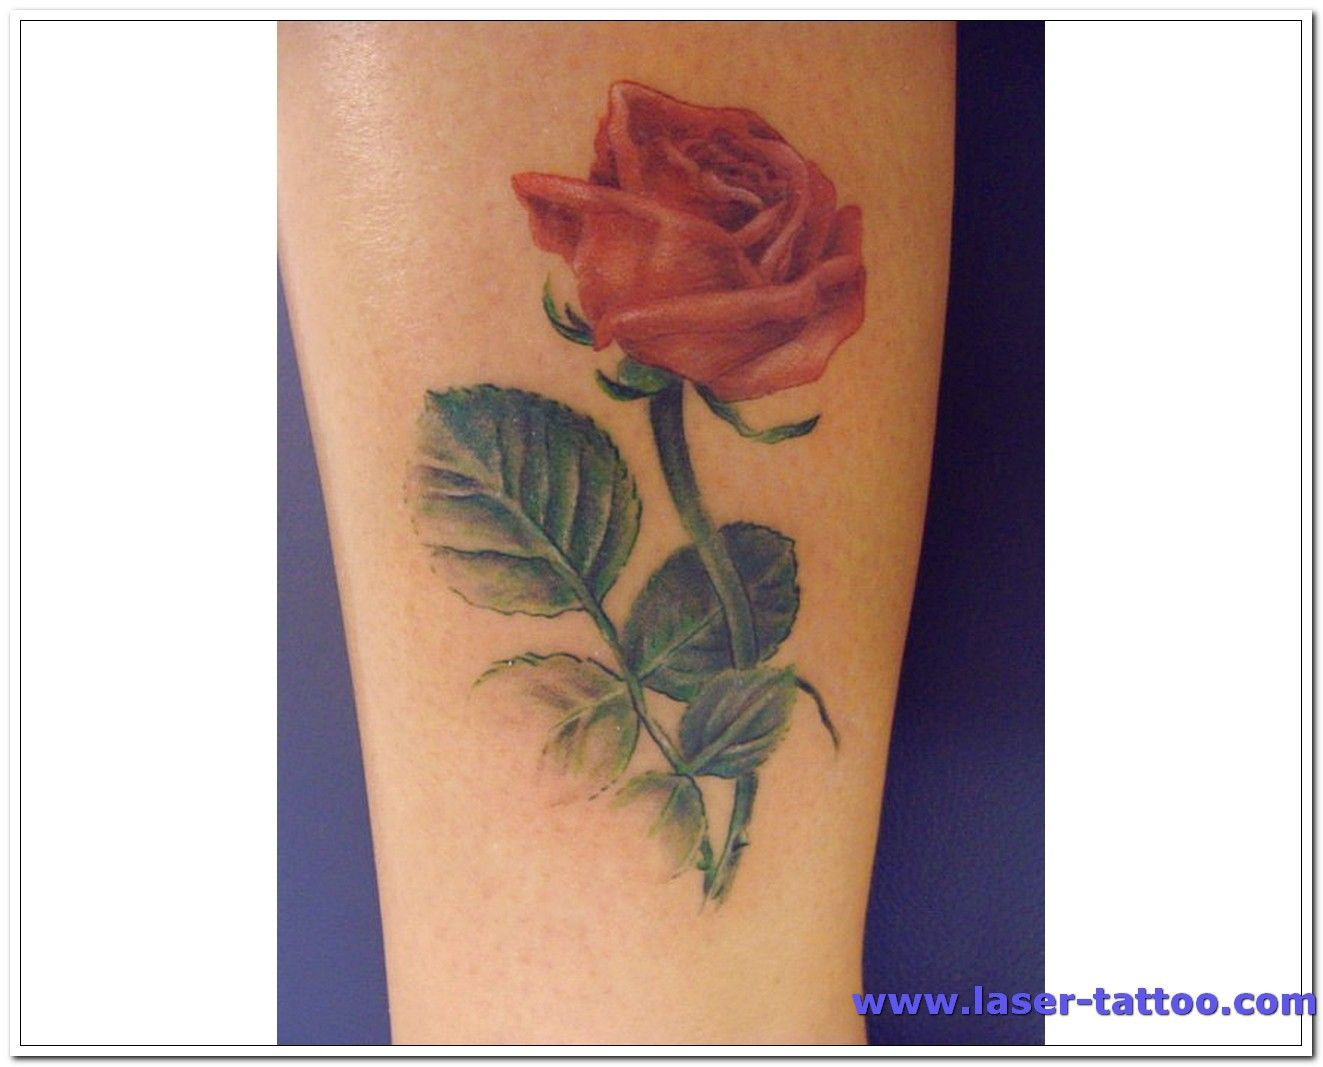 rose tattoos for girls rose tattoo designs for girls leg desings free download tattoo. Black Bedroom Furniture Sets. Home Design Ideas